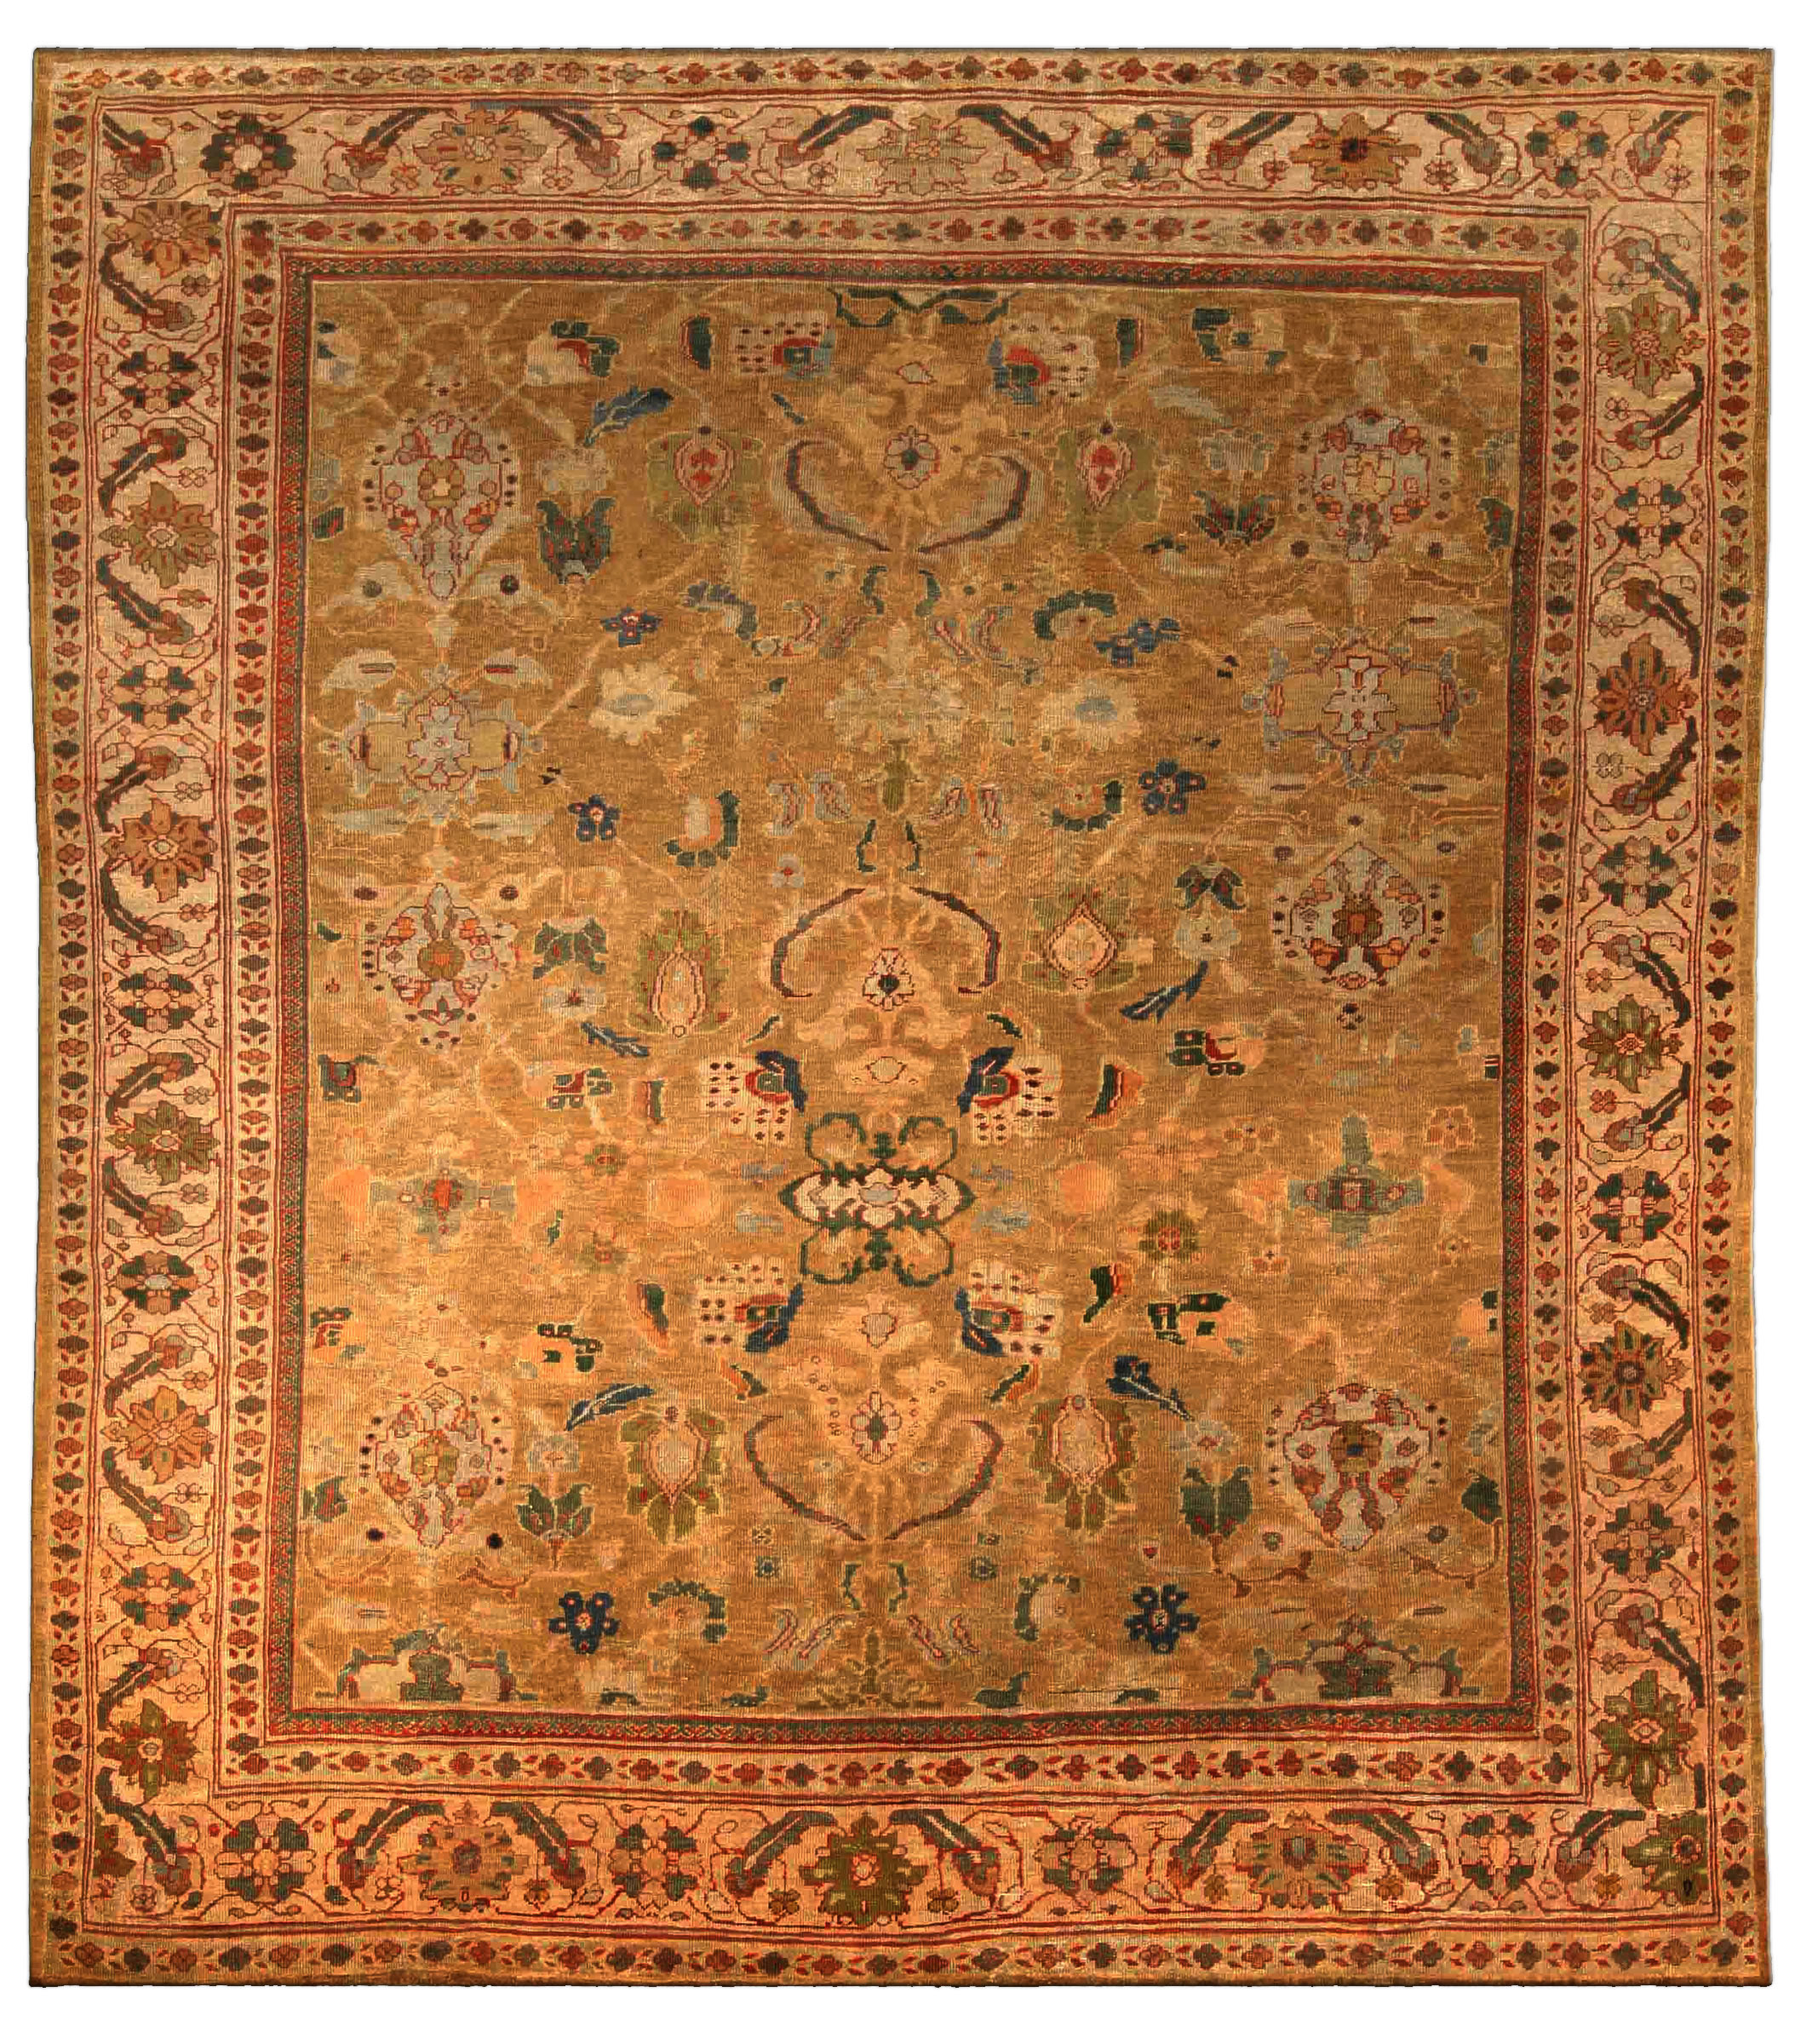 Antique Persian Sultanabad Rug BB4057 By Doris Leslie Blau